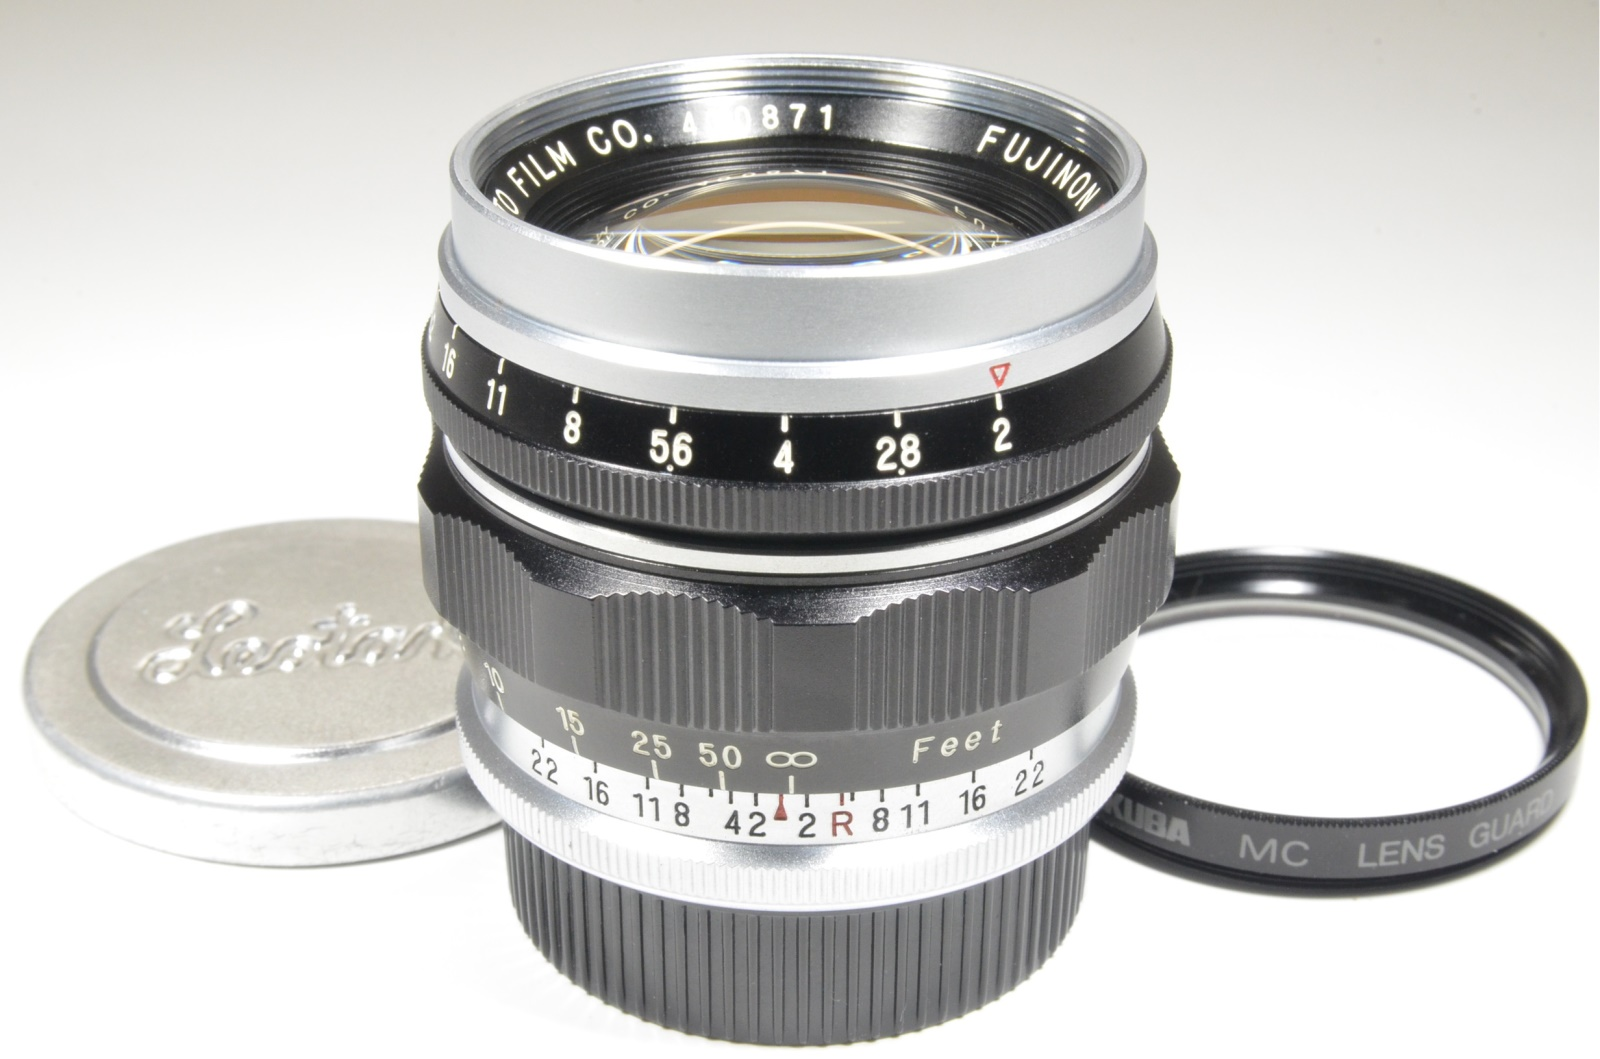 fuji fujinon 50mm 5cm f2 l mount lens for leica m39 l39 ltm from japan